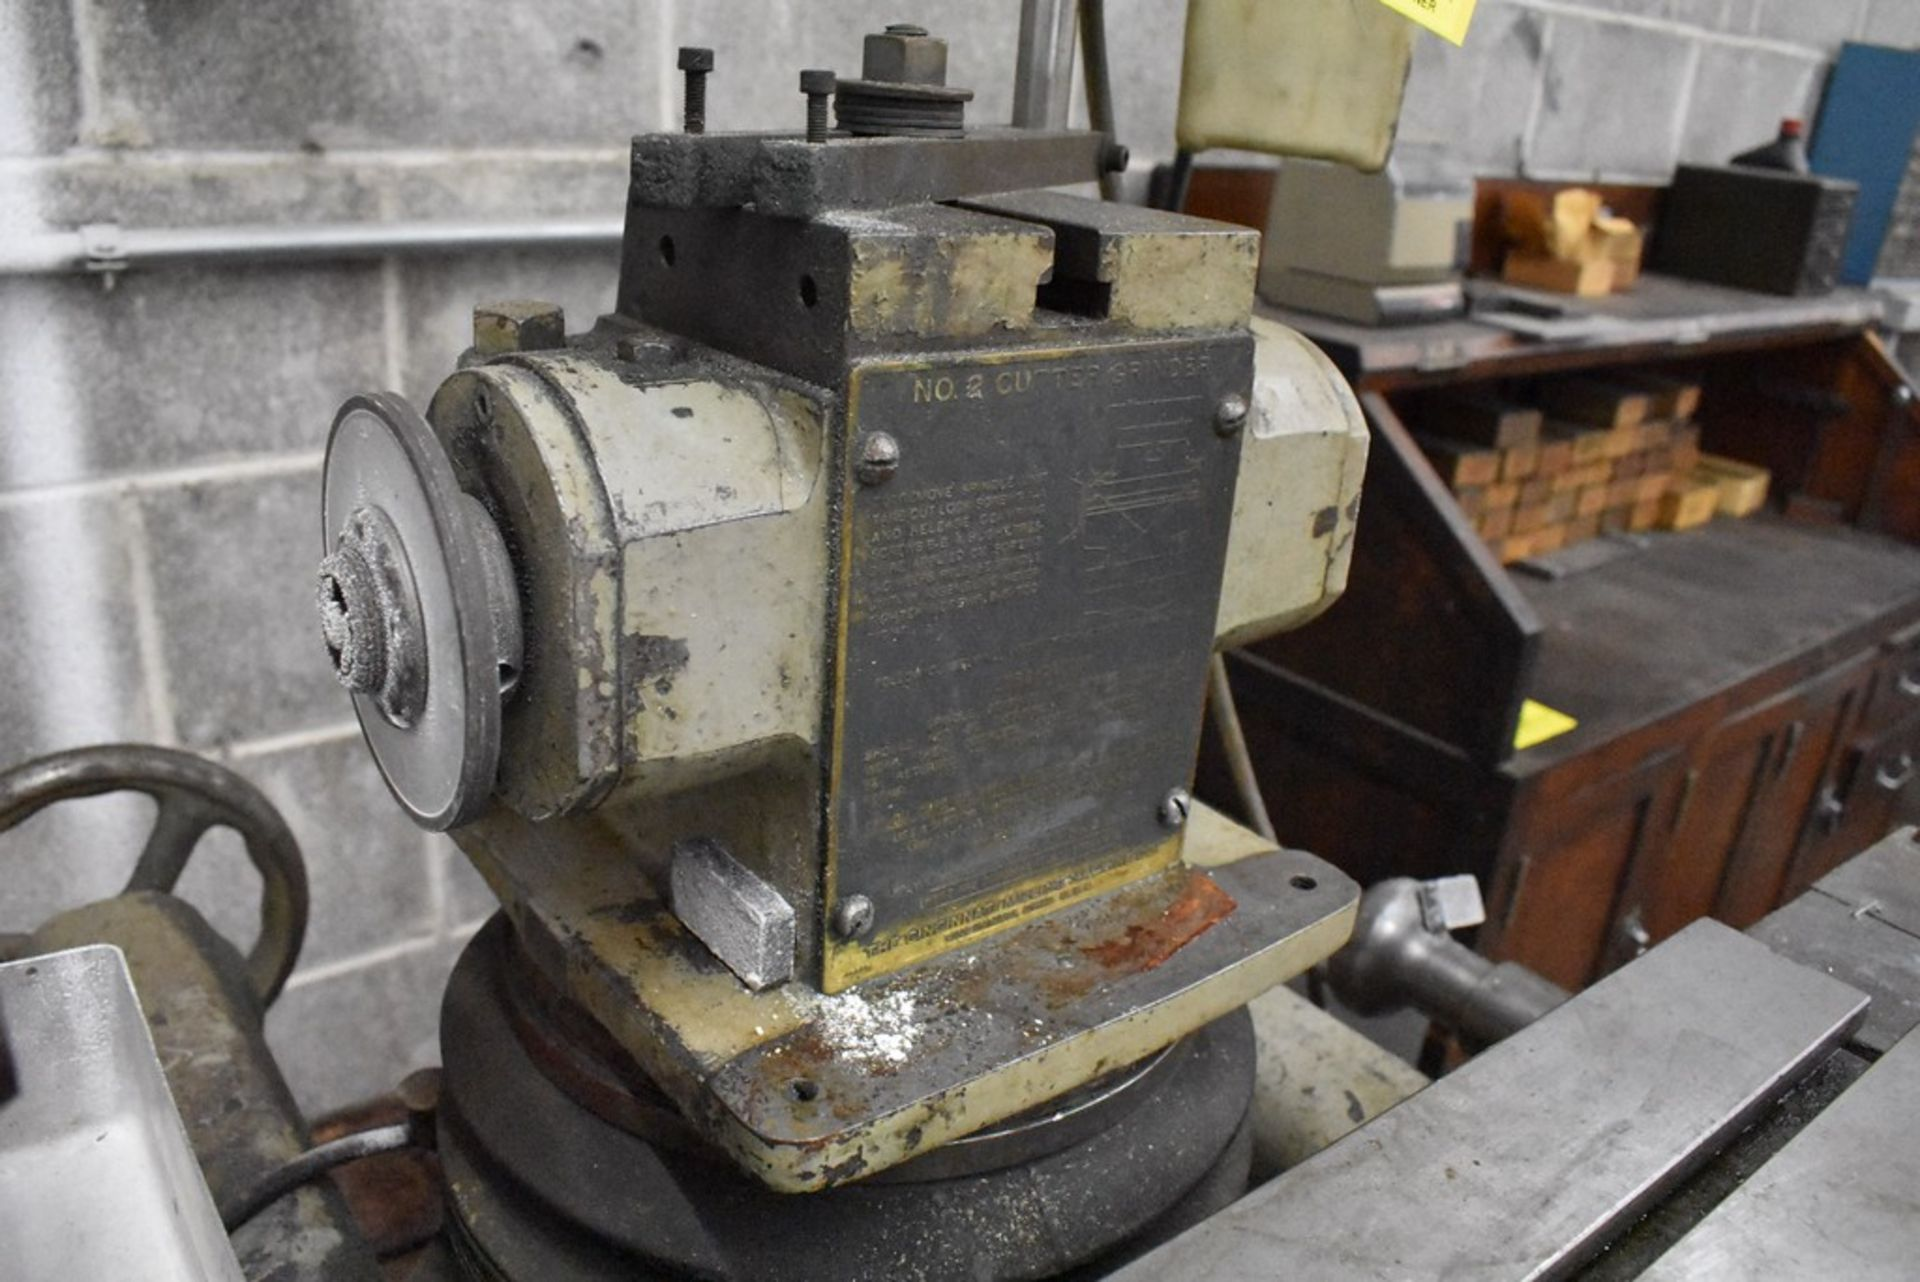 CINCINNATI NO. 2 TOOL AND CUTTER GRINDER, S/N 1D2T1Z-771, WITH MOTORIZED WORK HEAD - Image 11 of 14